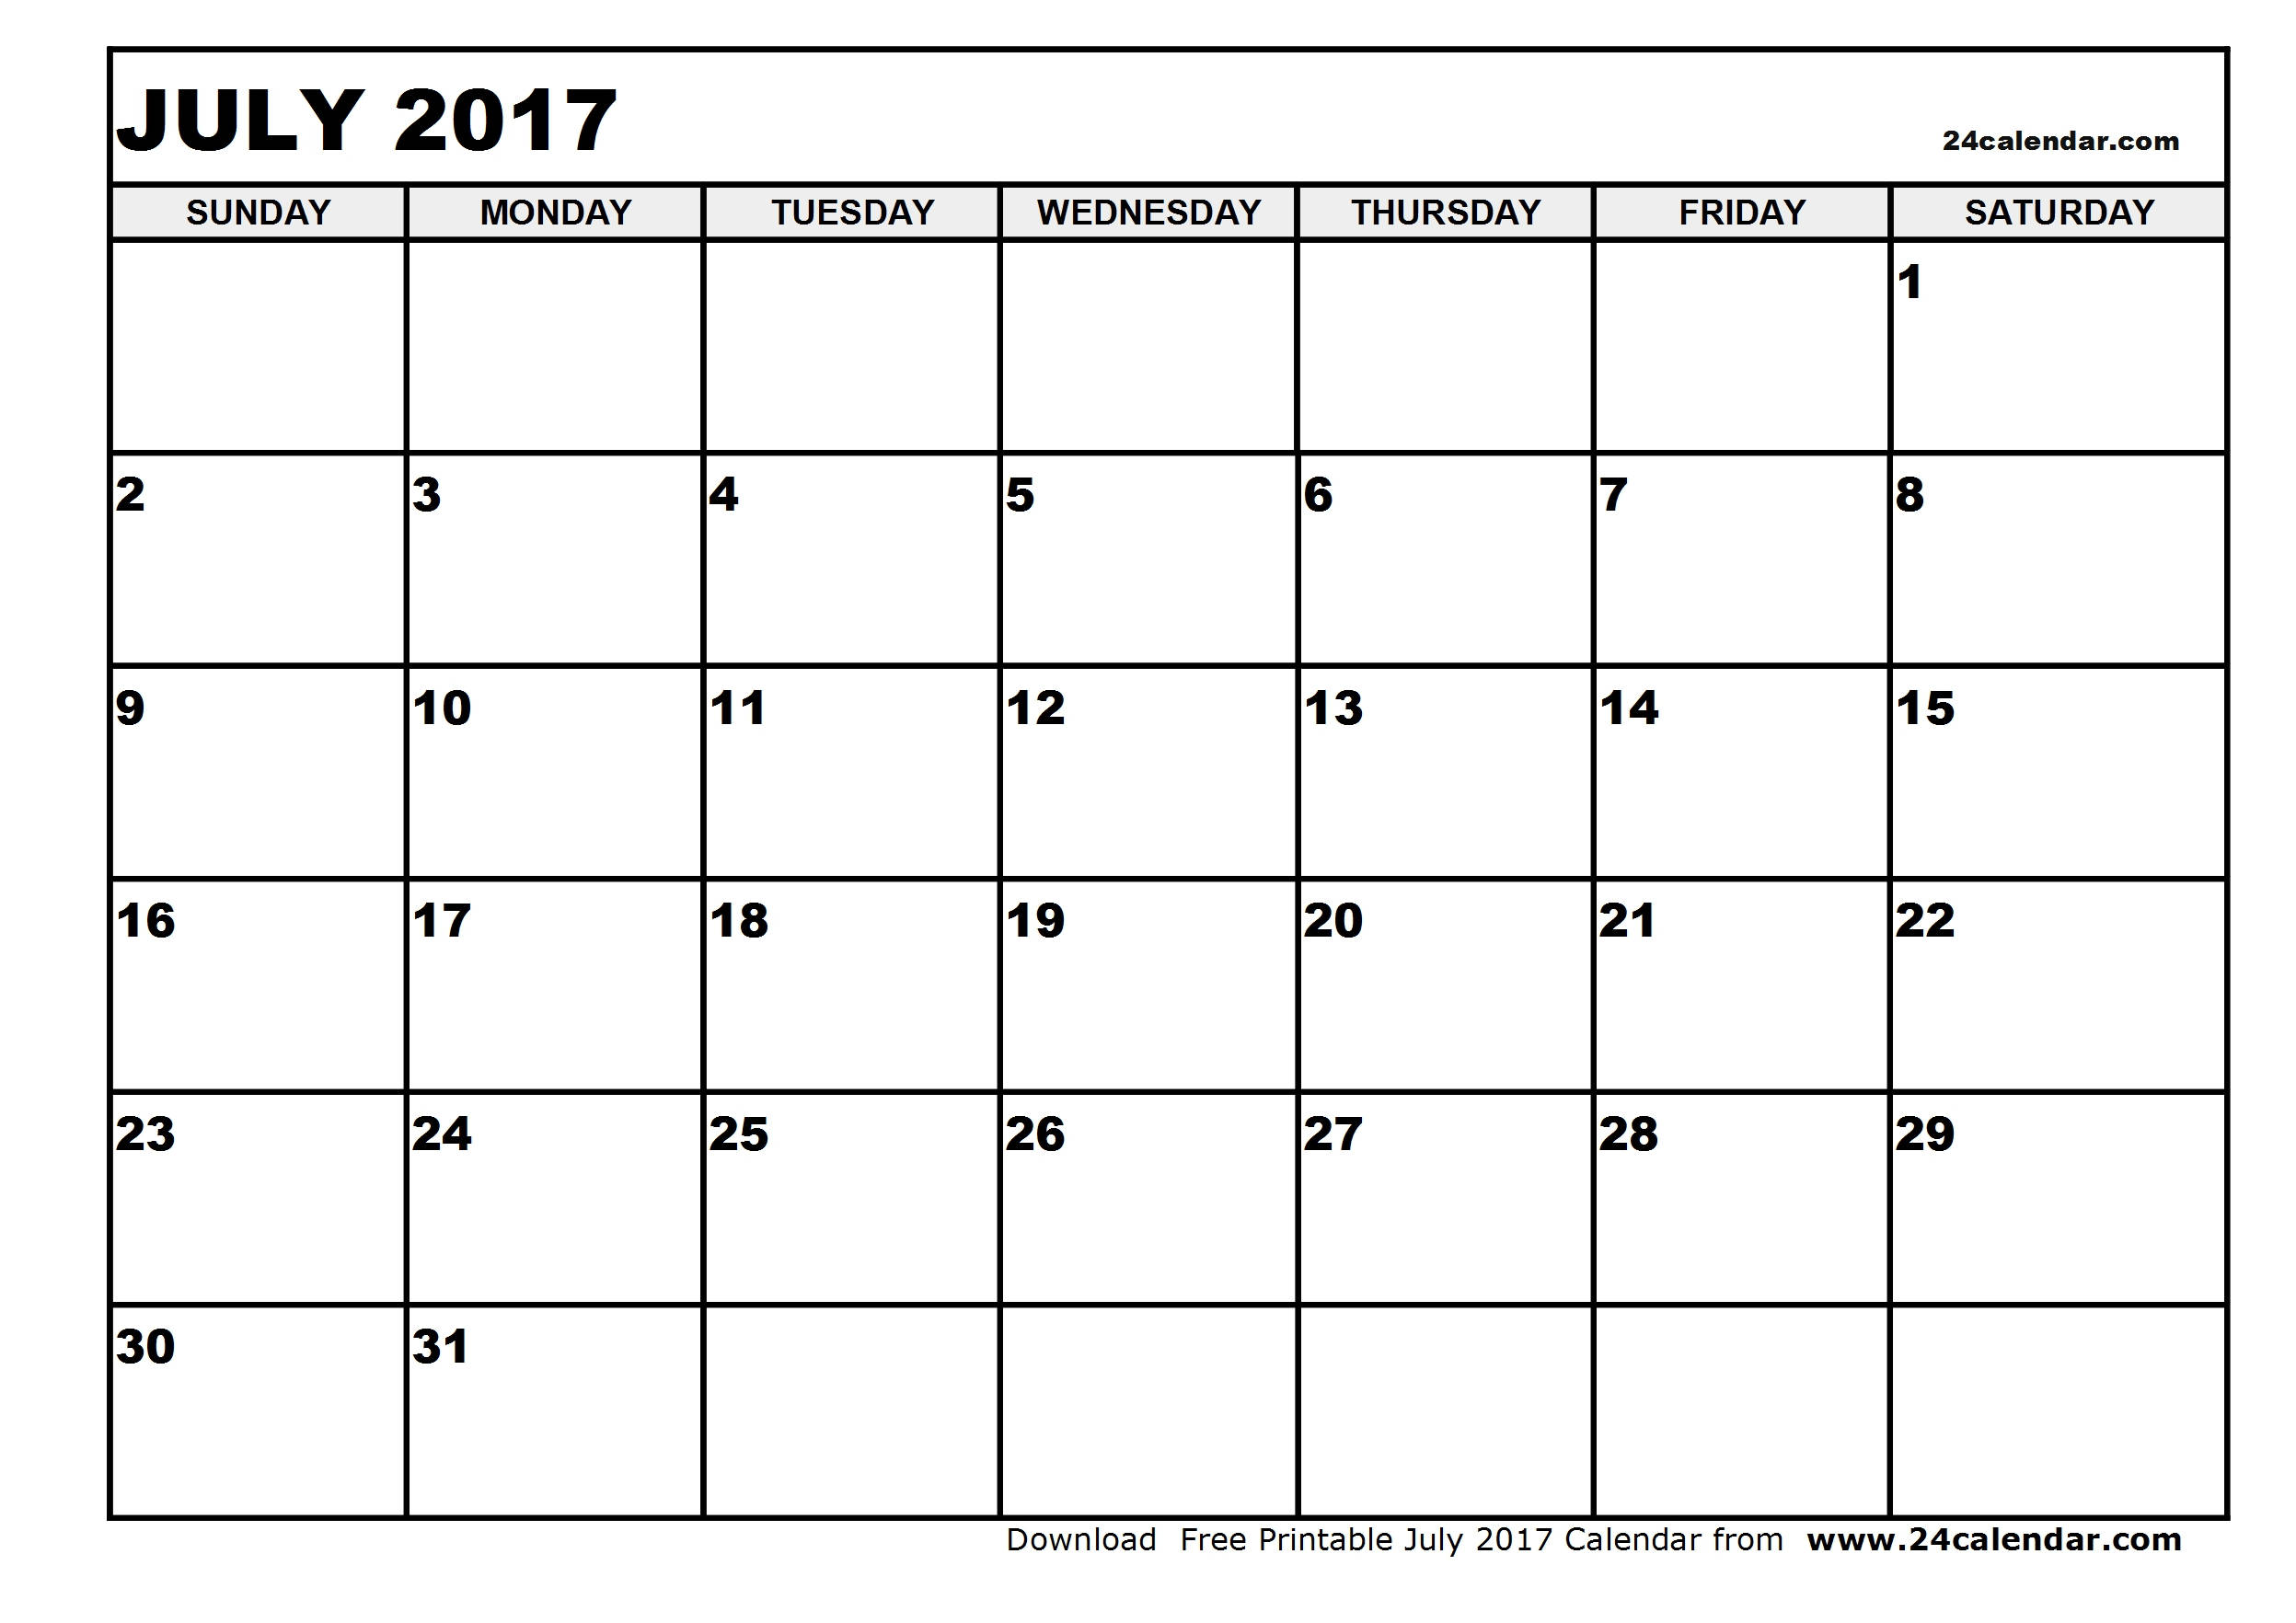 Blank July 2017 Calendar in Printable format.